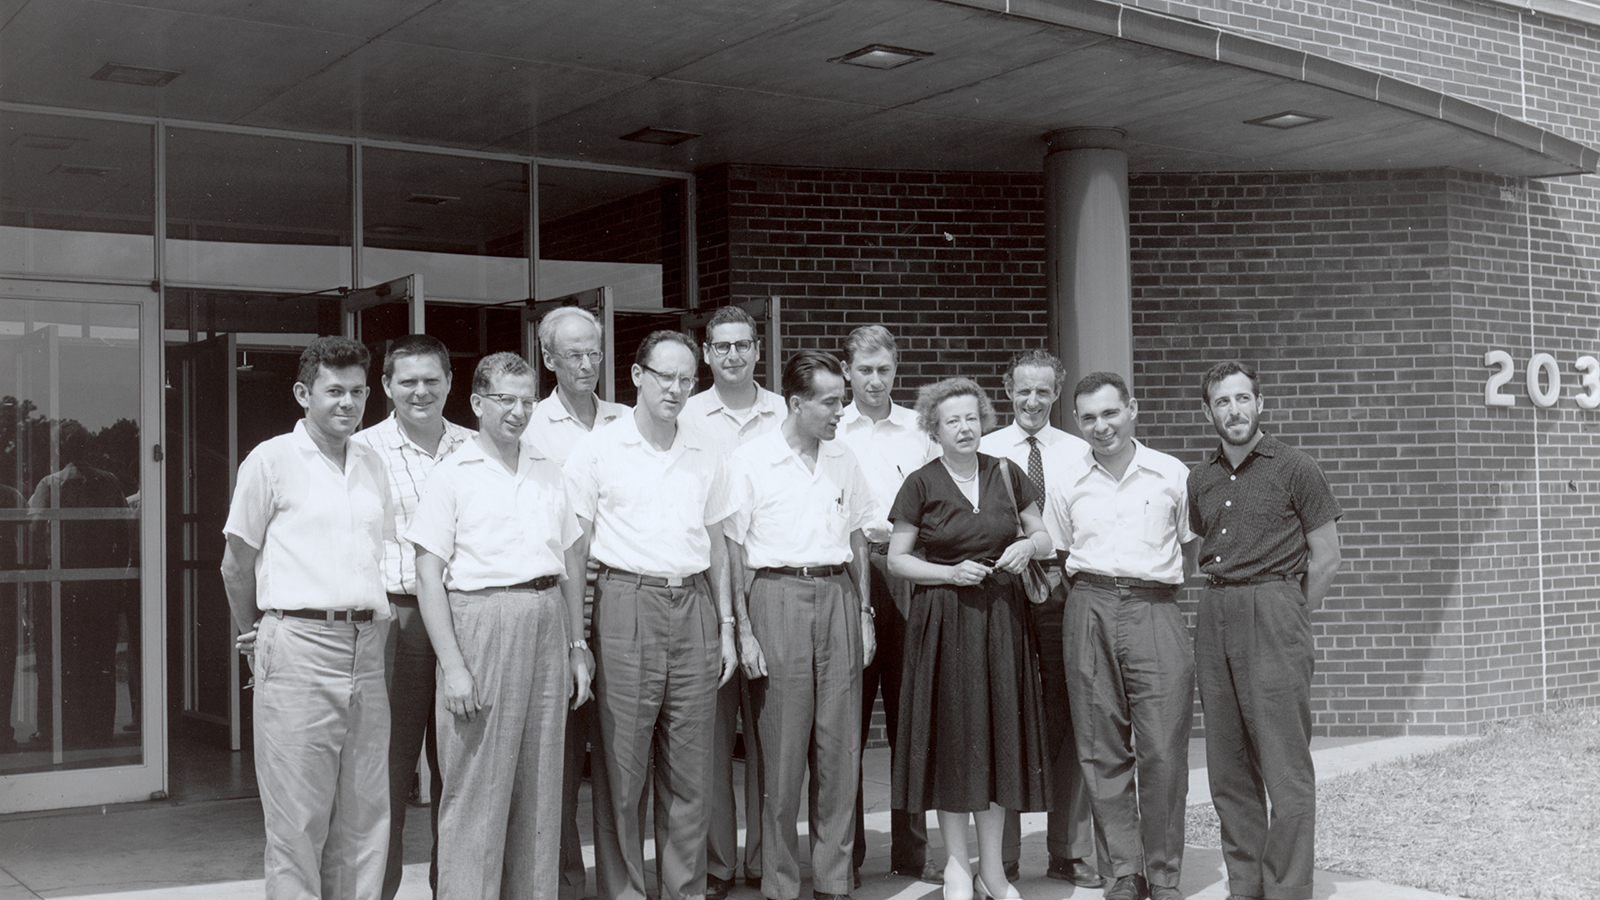 Here Maria Goeppert Mayer (fourth from right) poses with her colleagues in front of Argonne's Physics building. (Image by Argonne National Laboratory.)